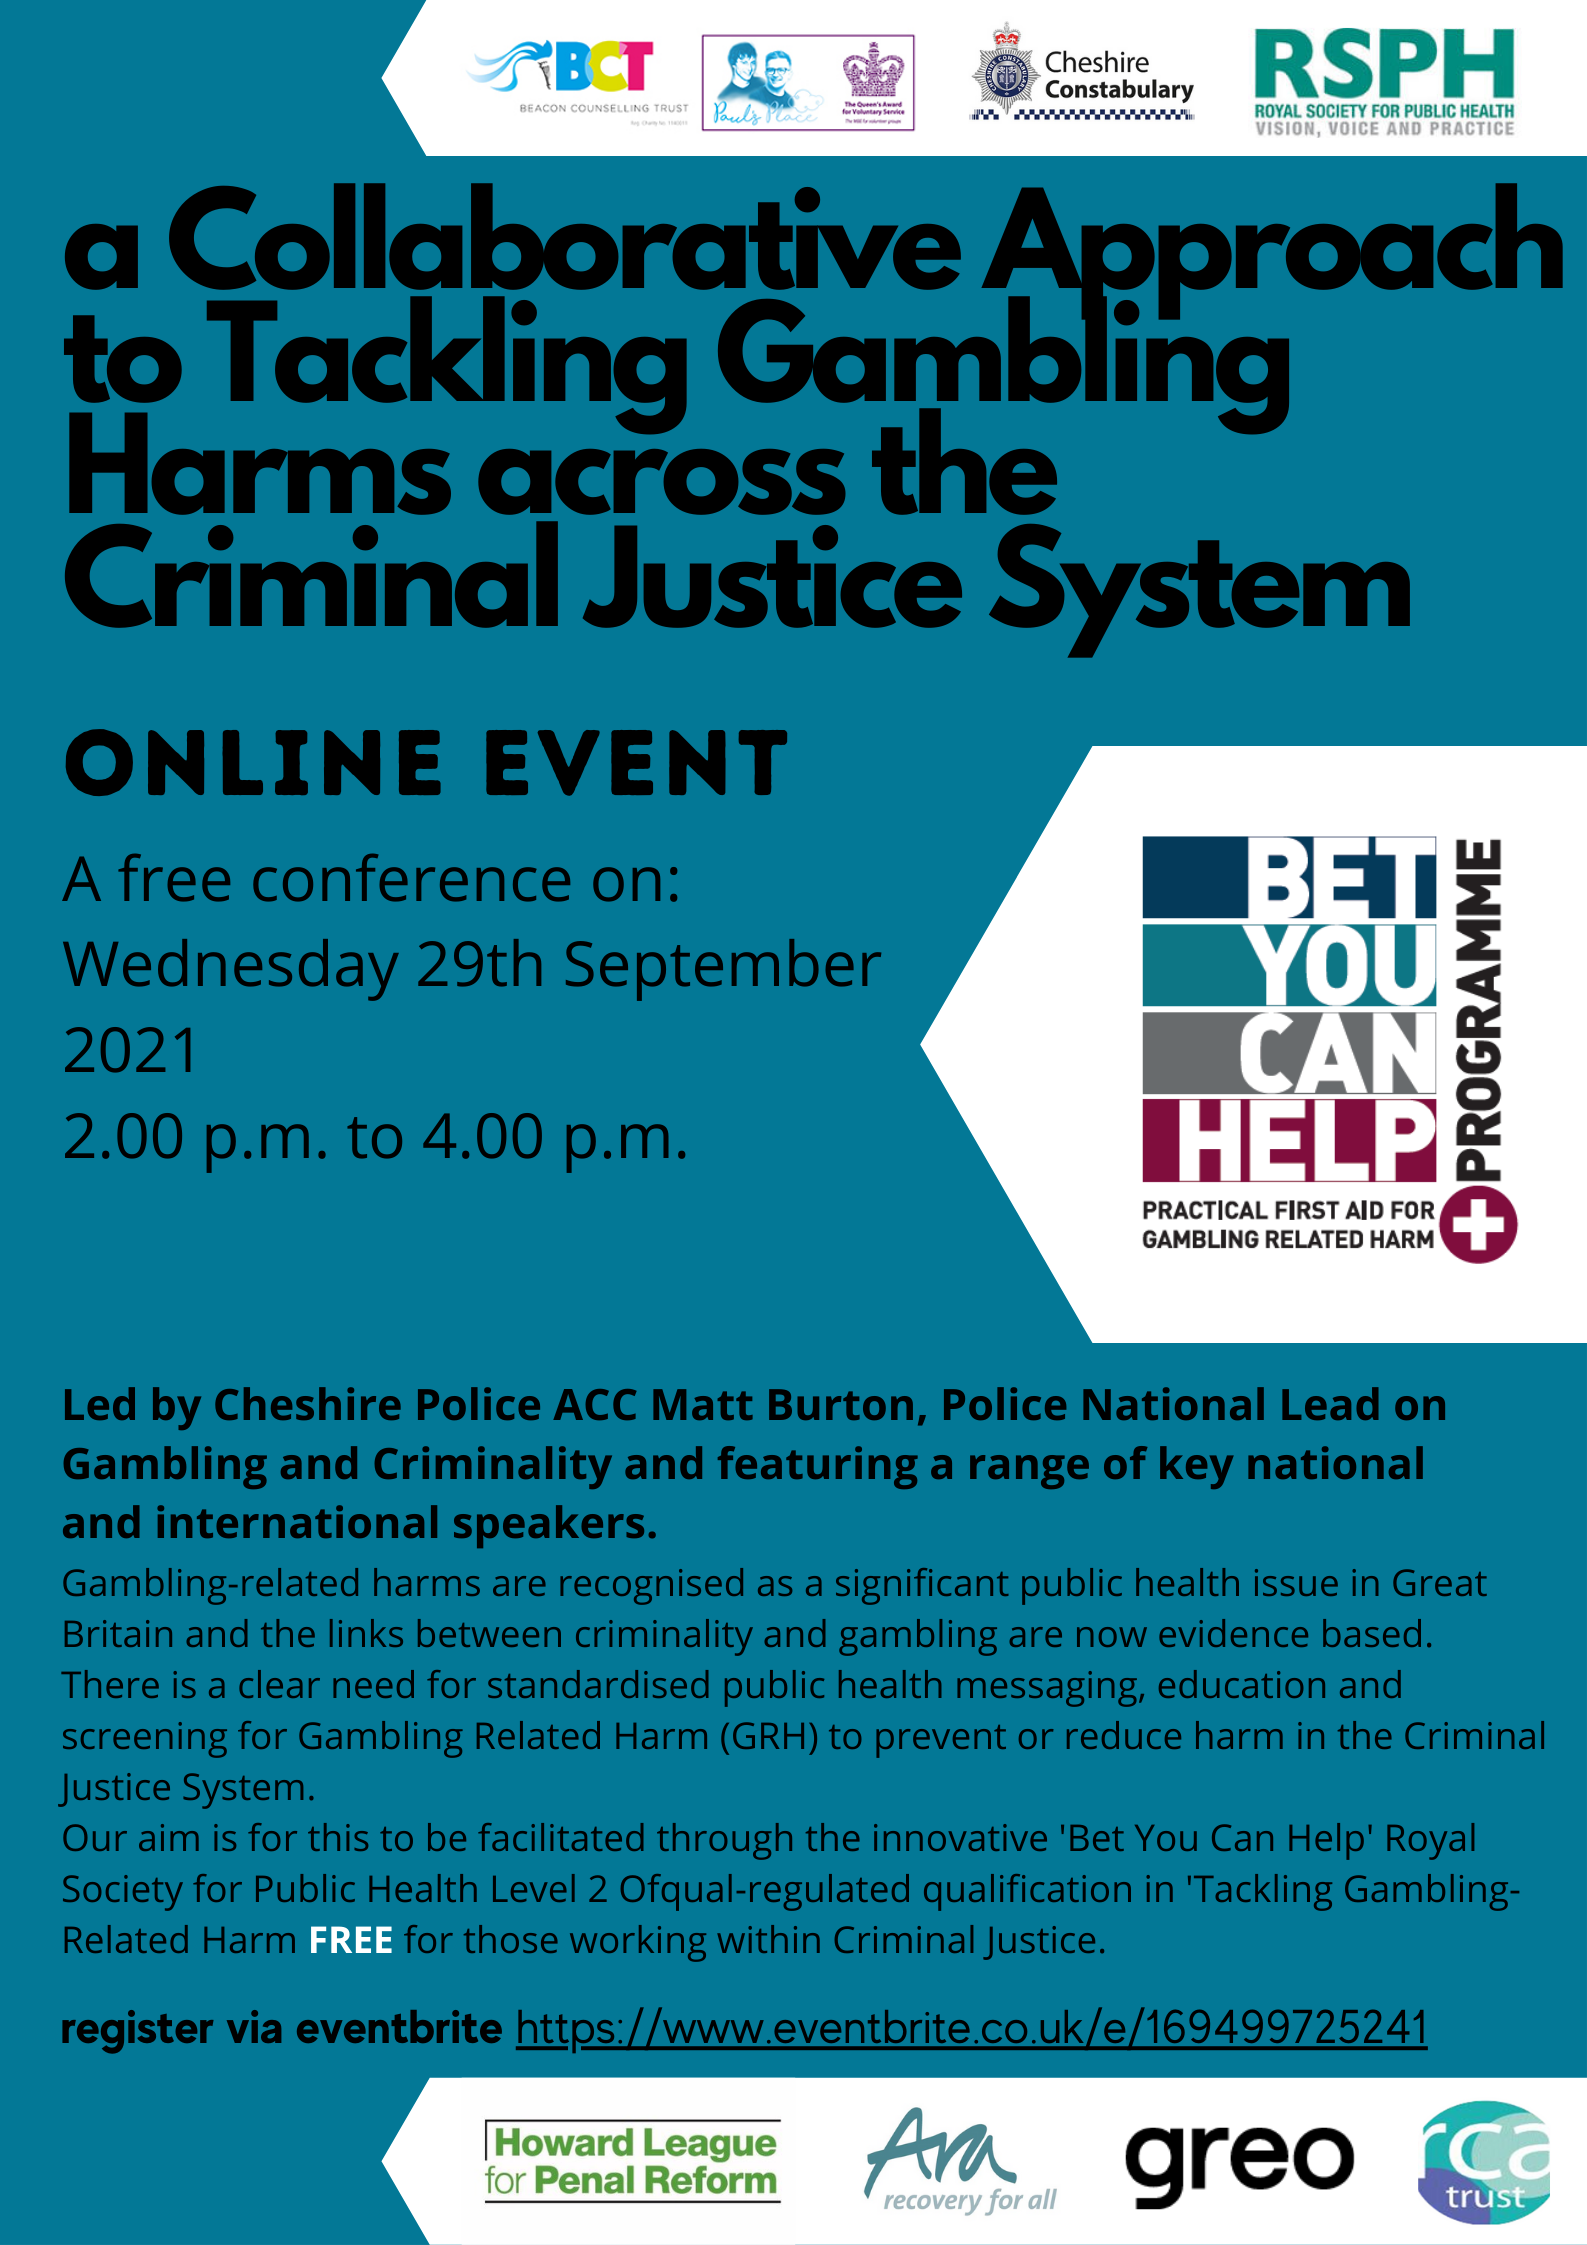 A Collaborative Approach to Tackling Gambling Harms across the Criminal Justice System